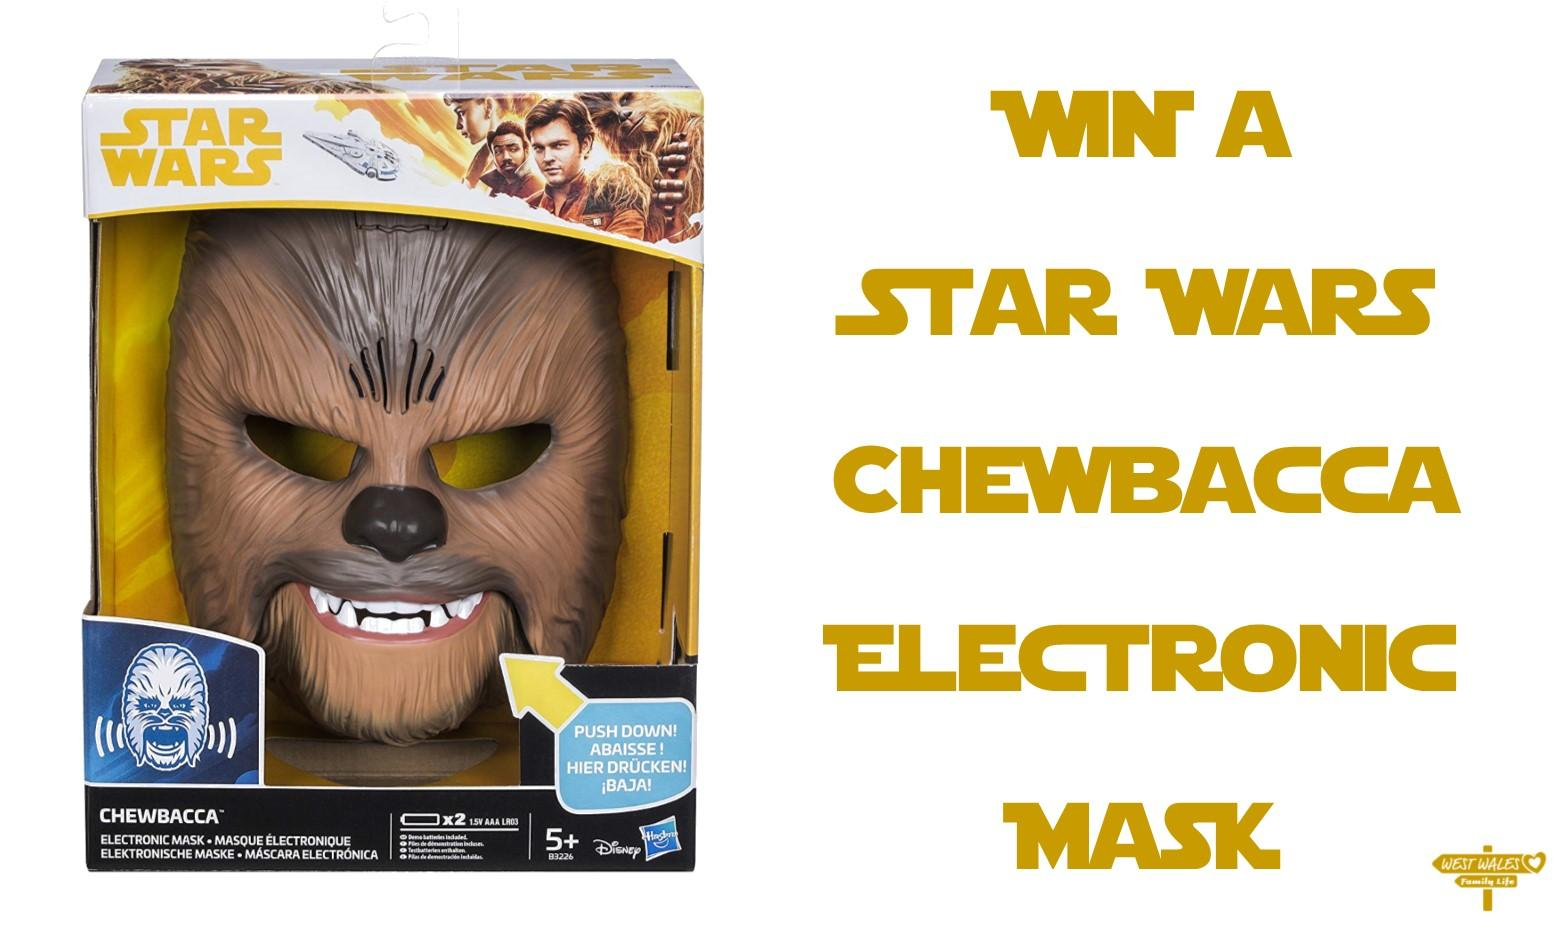 WIN a Star Wars the Force Awakens Chewbacca Electronic Mask